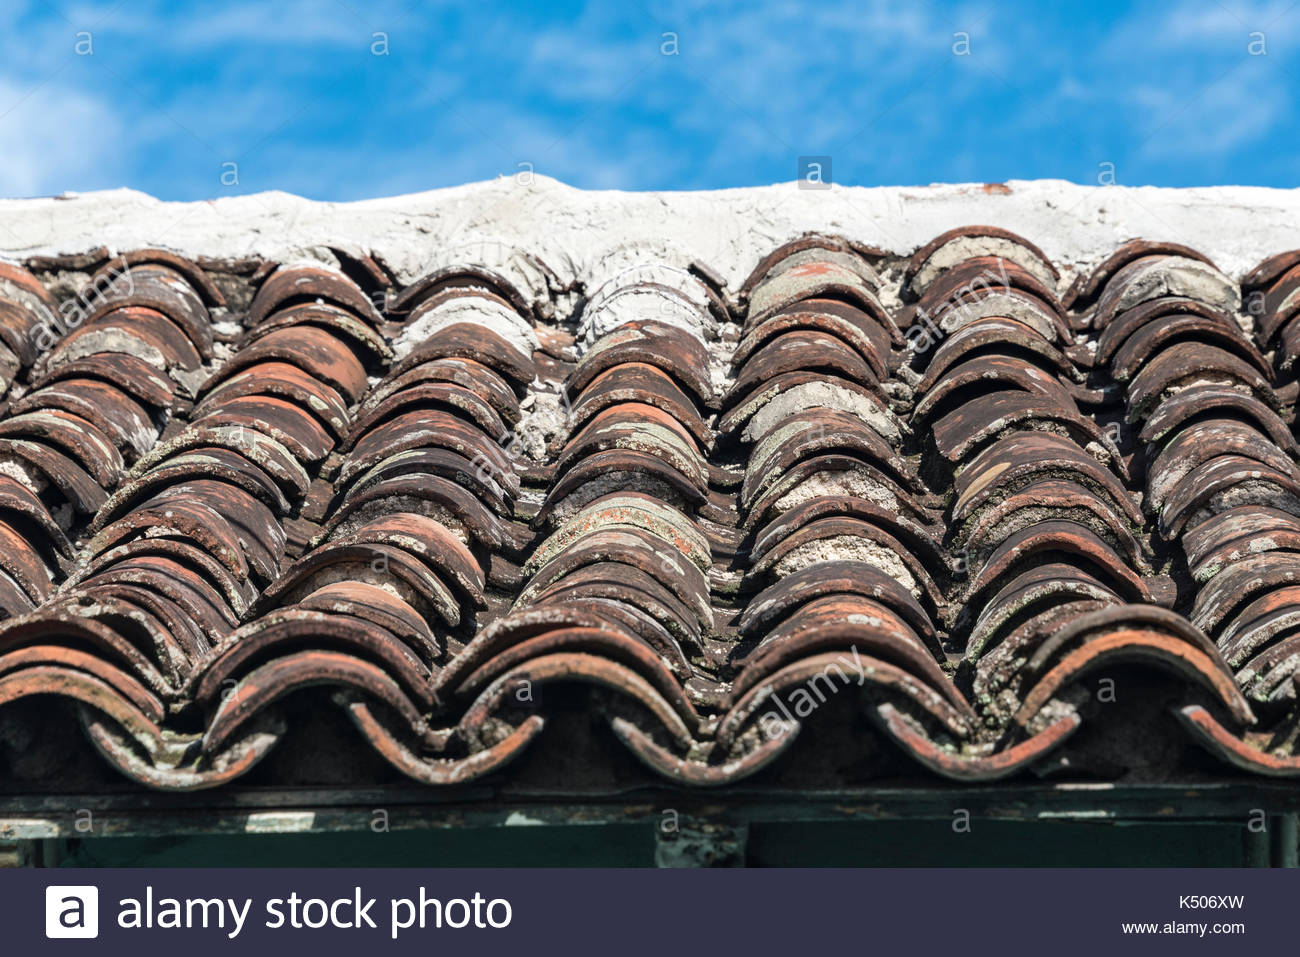 Rows of old clay pantiles laid on a roof, timeworn and blackened they are. - Stock Image